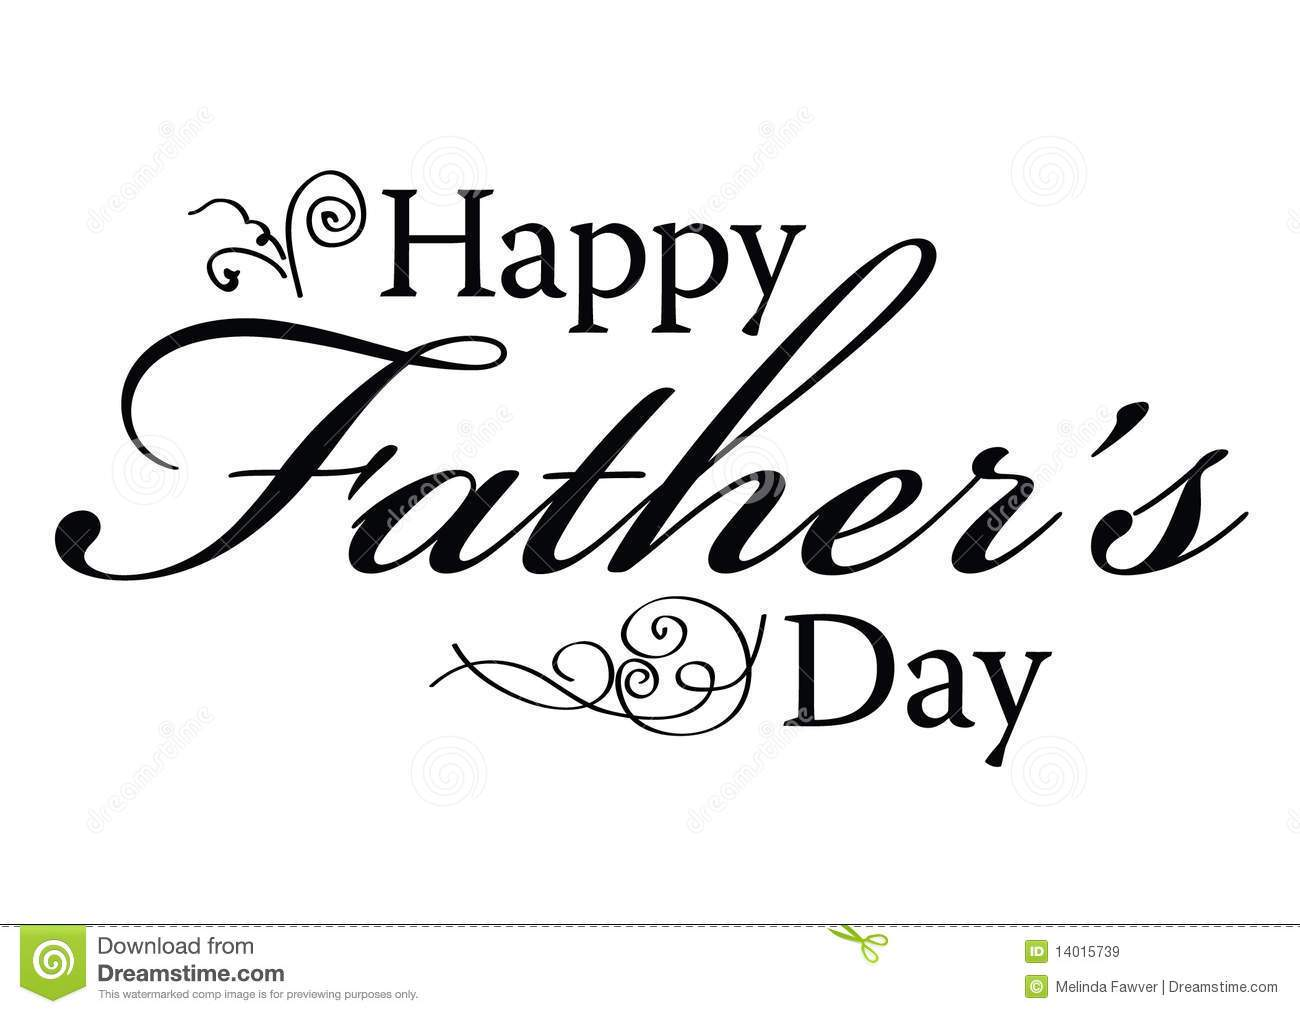 Happy fathers day christian clipart black and white image black and white library Christian happy fathers day clipart 1 » Clipart Portal image black and white library